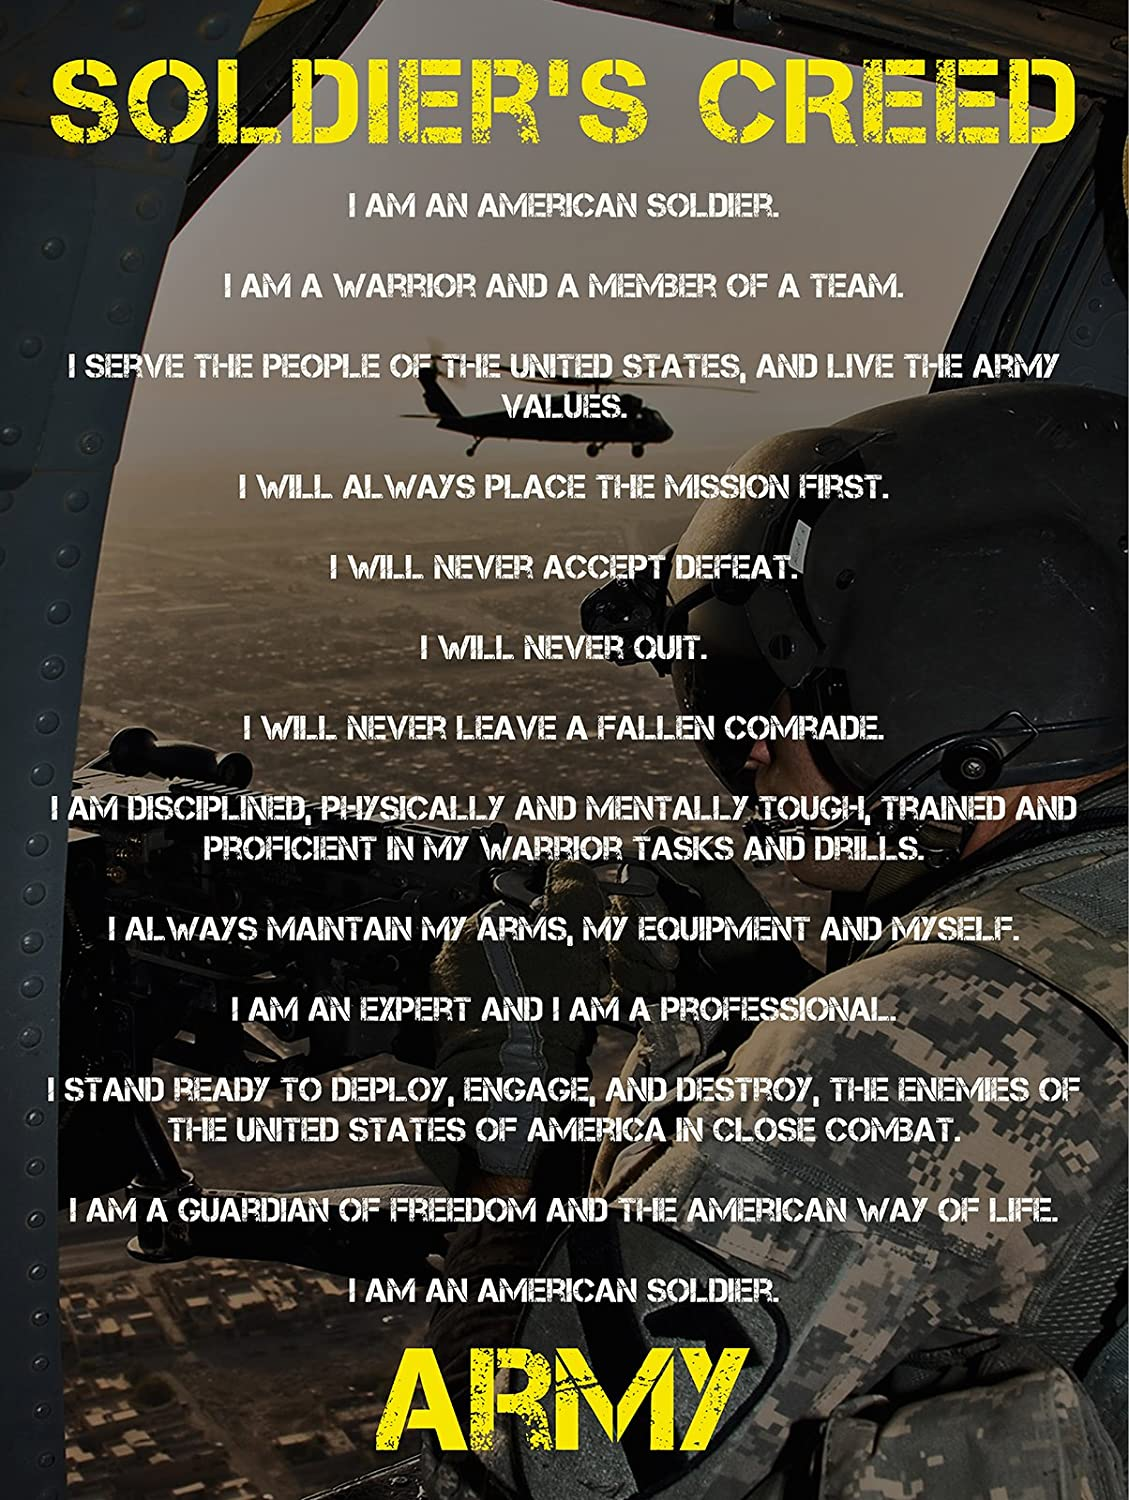 what is normally a members of the military creed